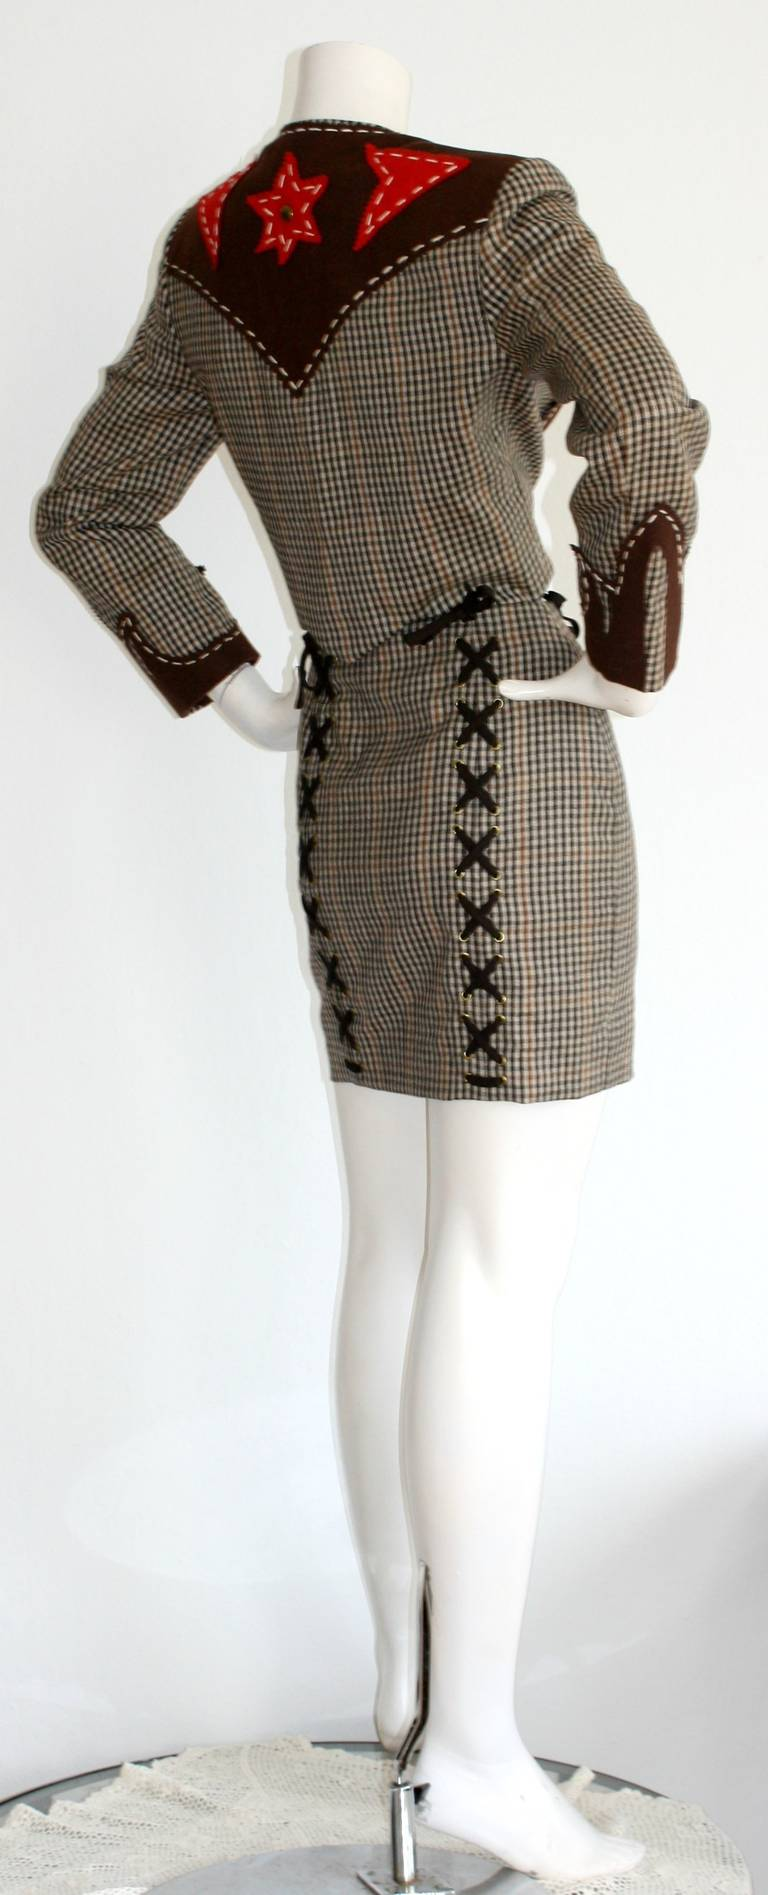 Rare Vintage Moschino Cheap & Chic Western Cowgirl Houndstooth Lace Suit 4